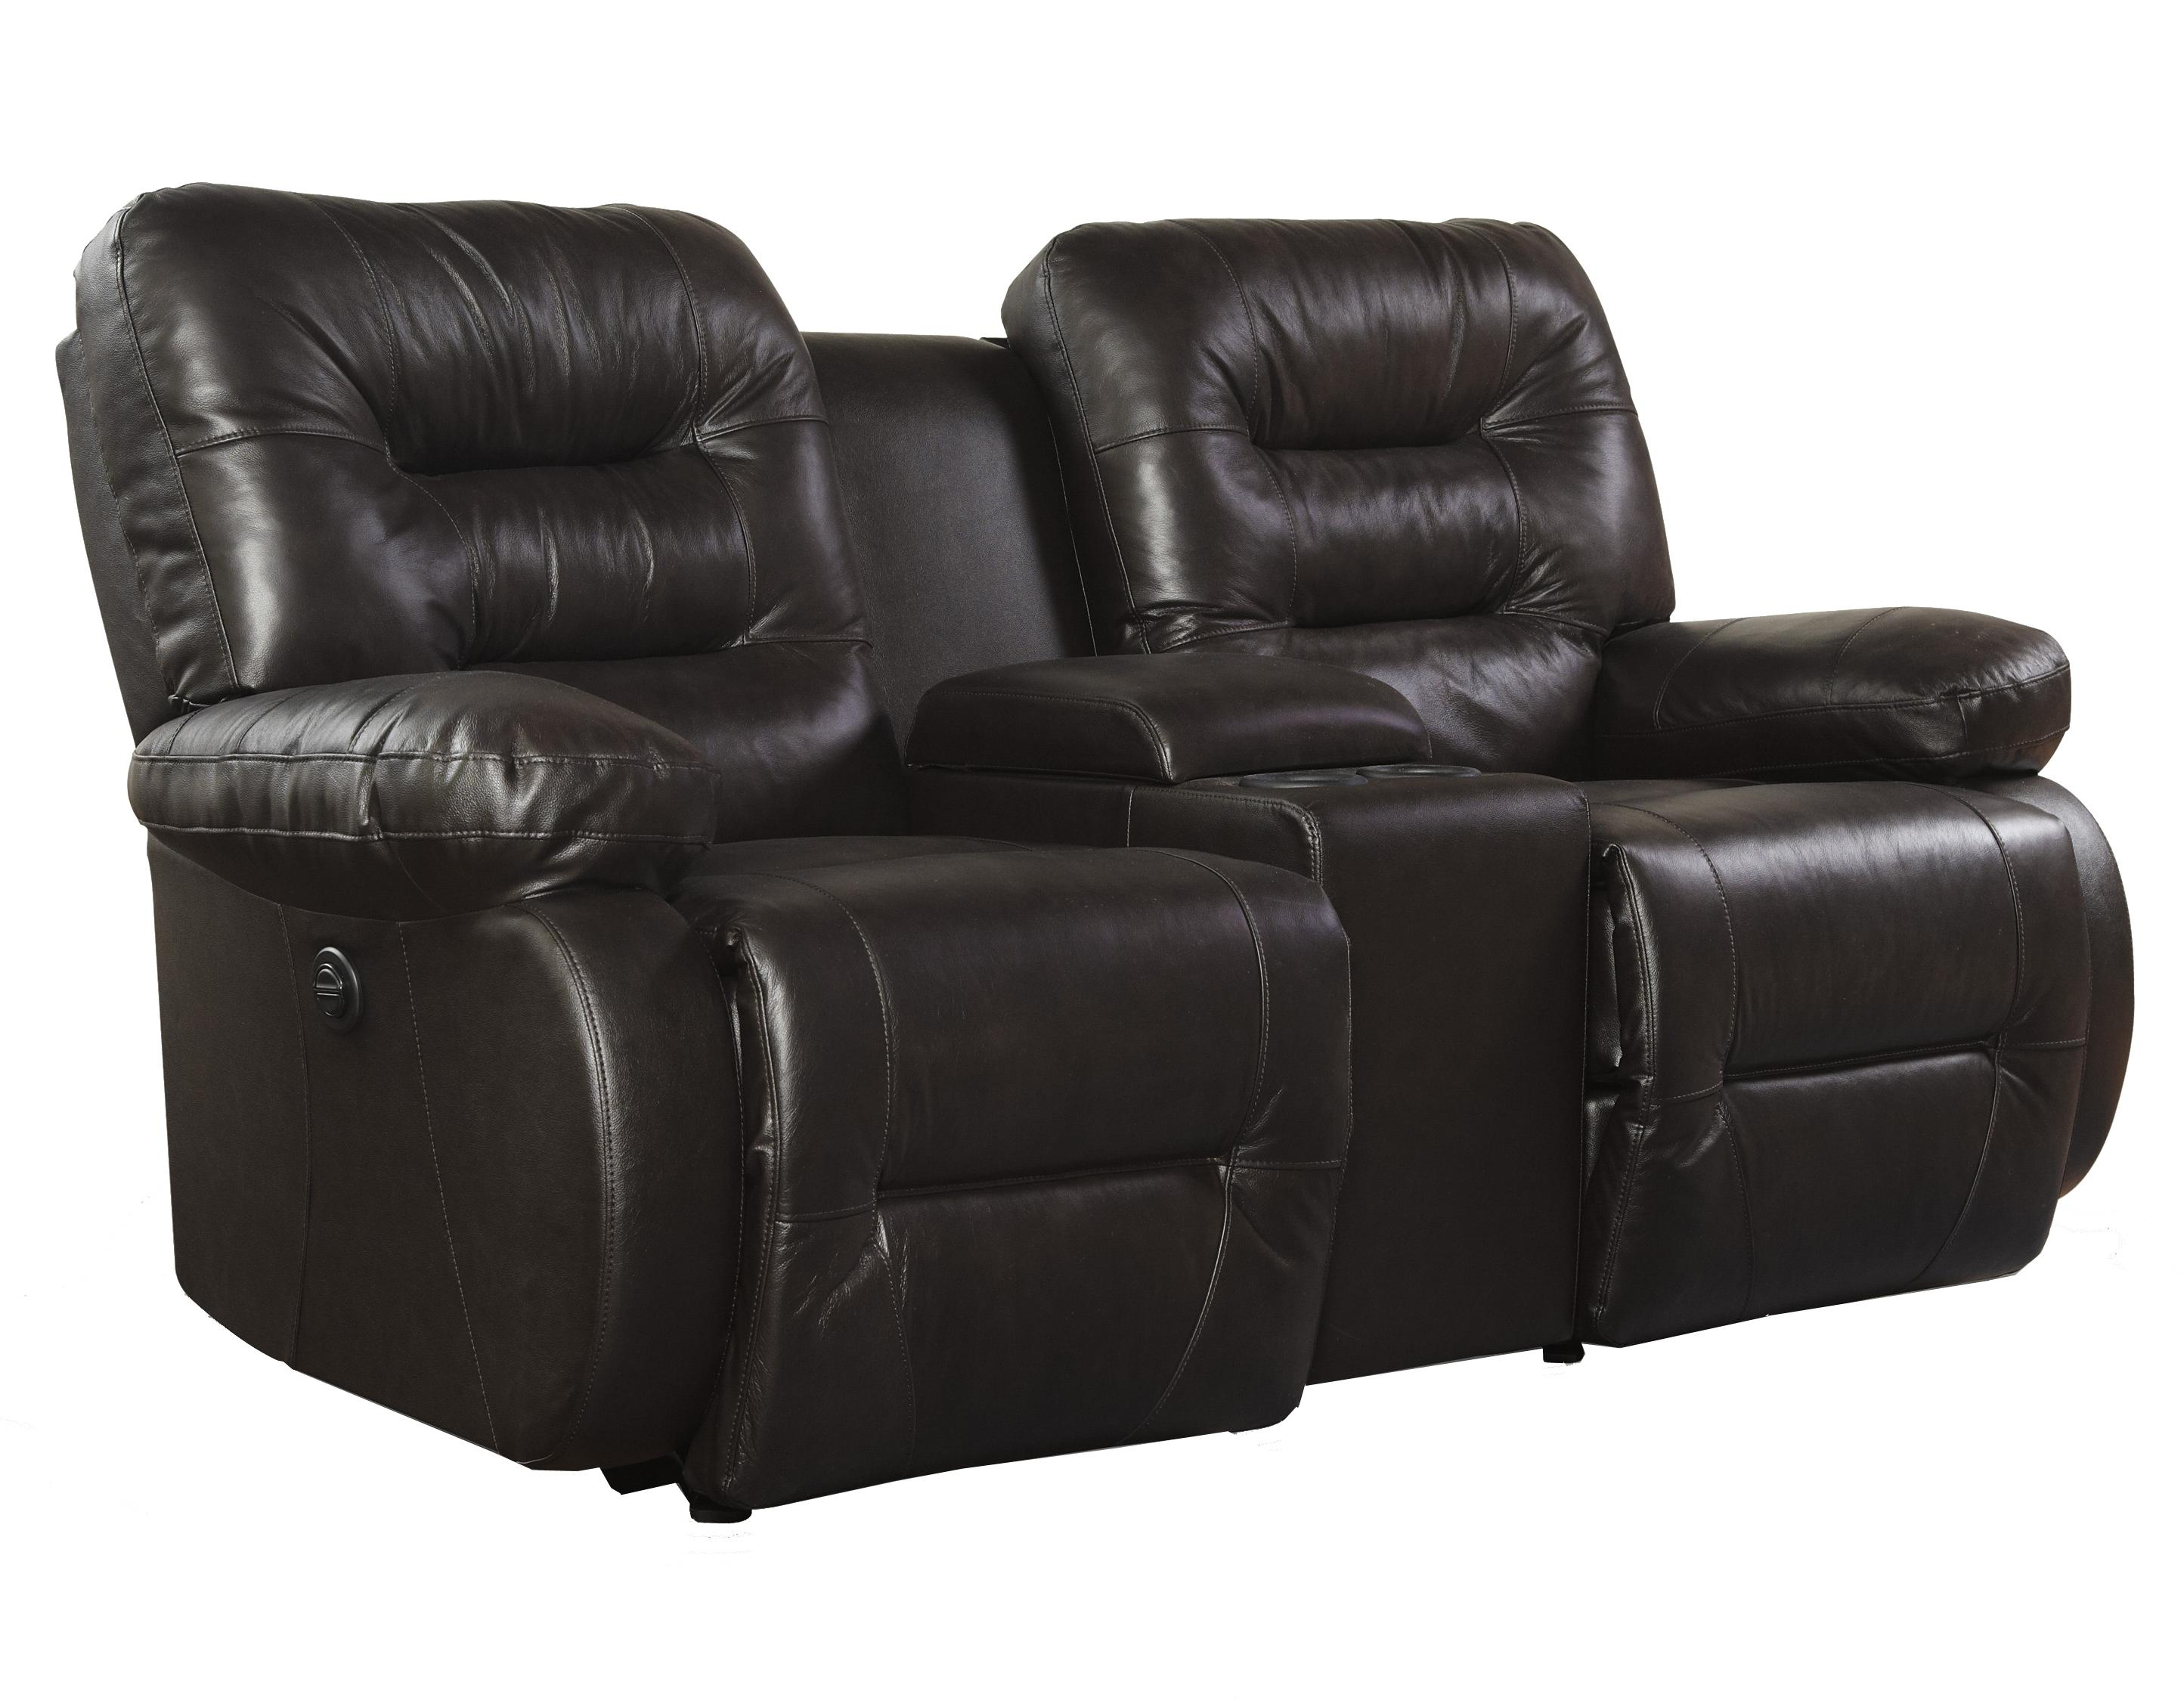 Best Home Furnishings Maddox Power Space Saver Console Loveseat - Item Number: L840CQ4